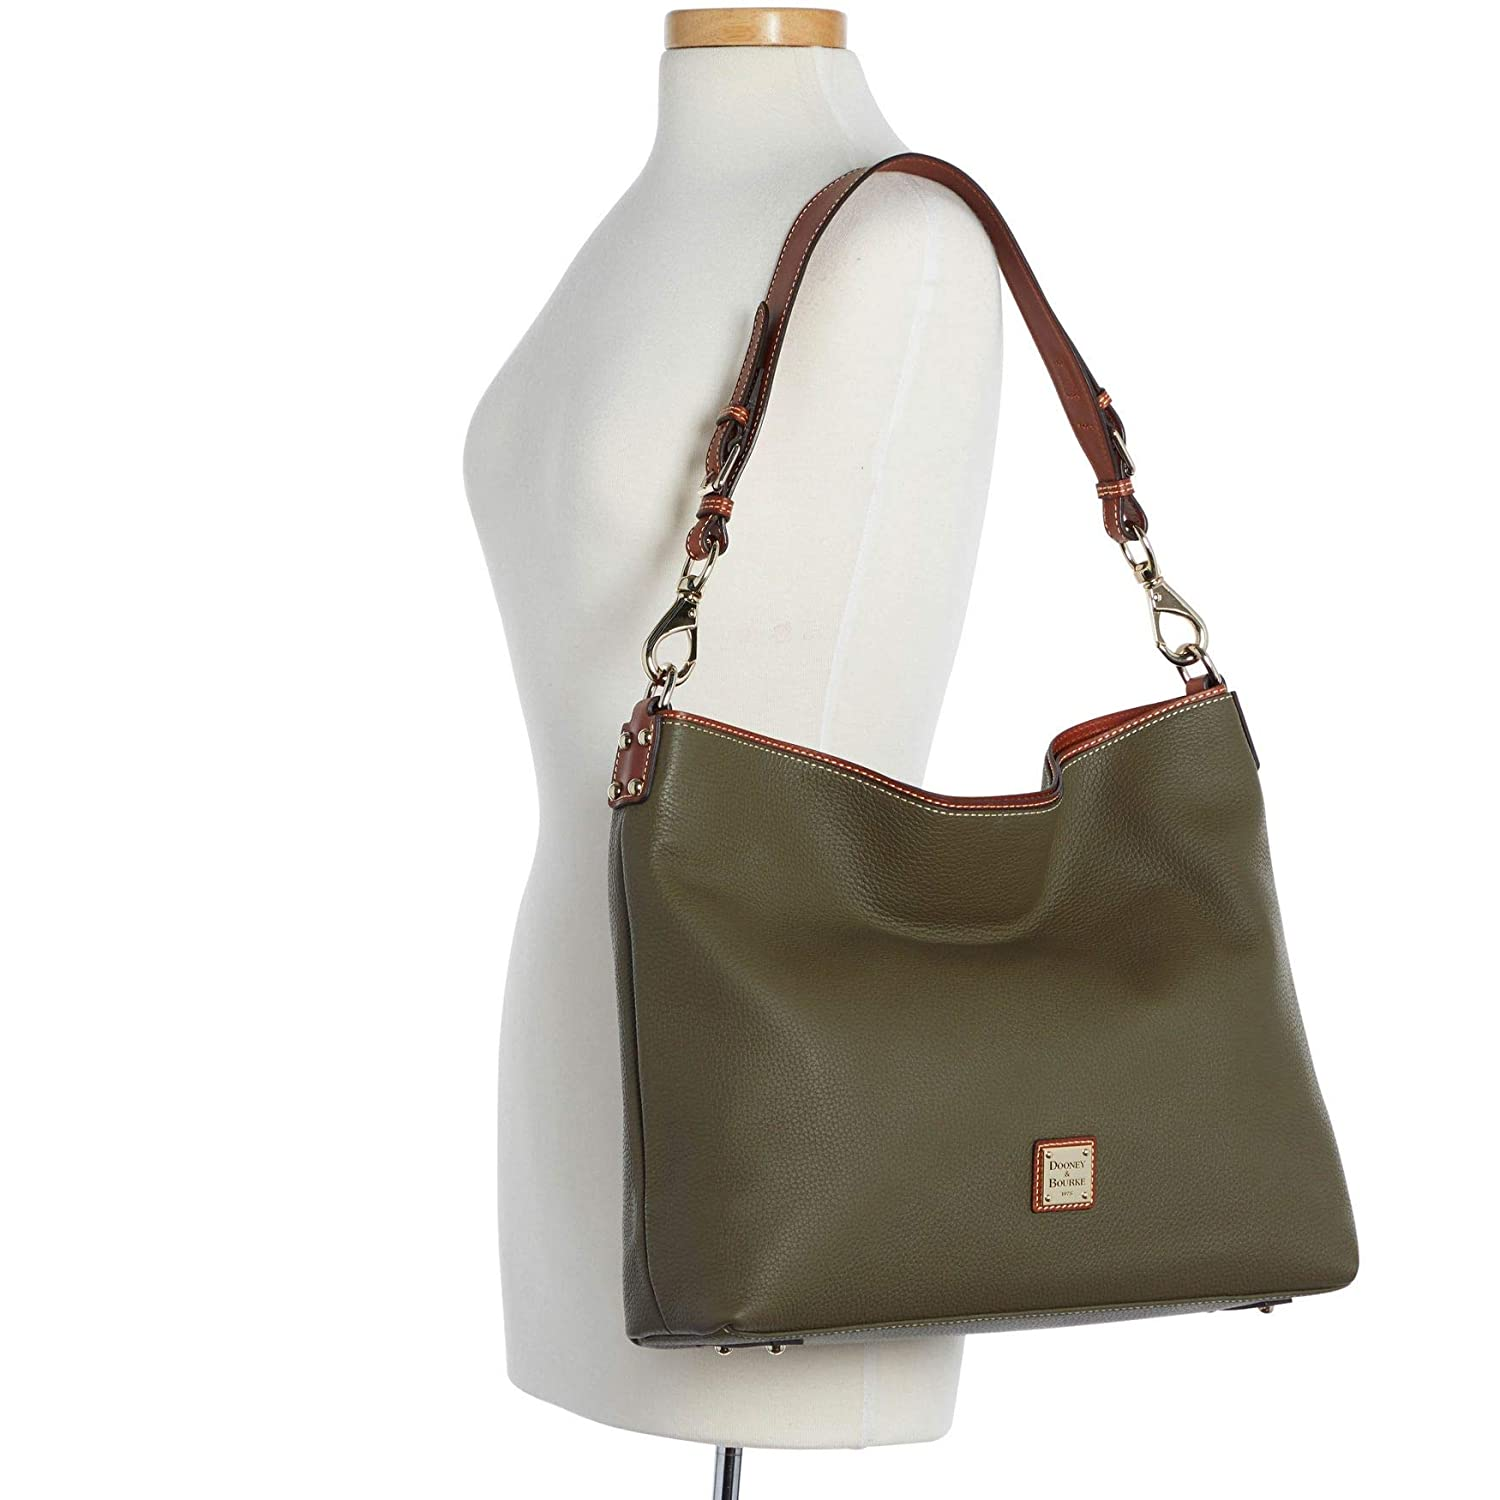 3e1f410de6 Dooney & Bourke Pebble Grain Extra Large Courtney Sac Bag Olive: Handbags:  Amazon.com